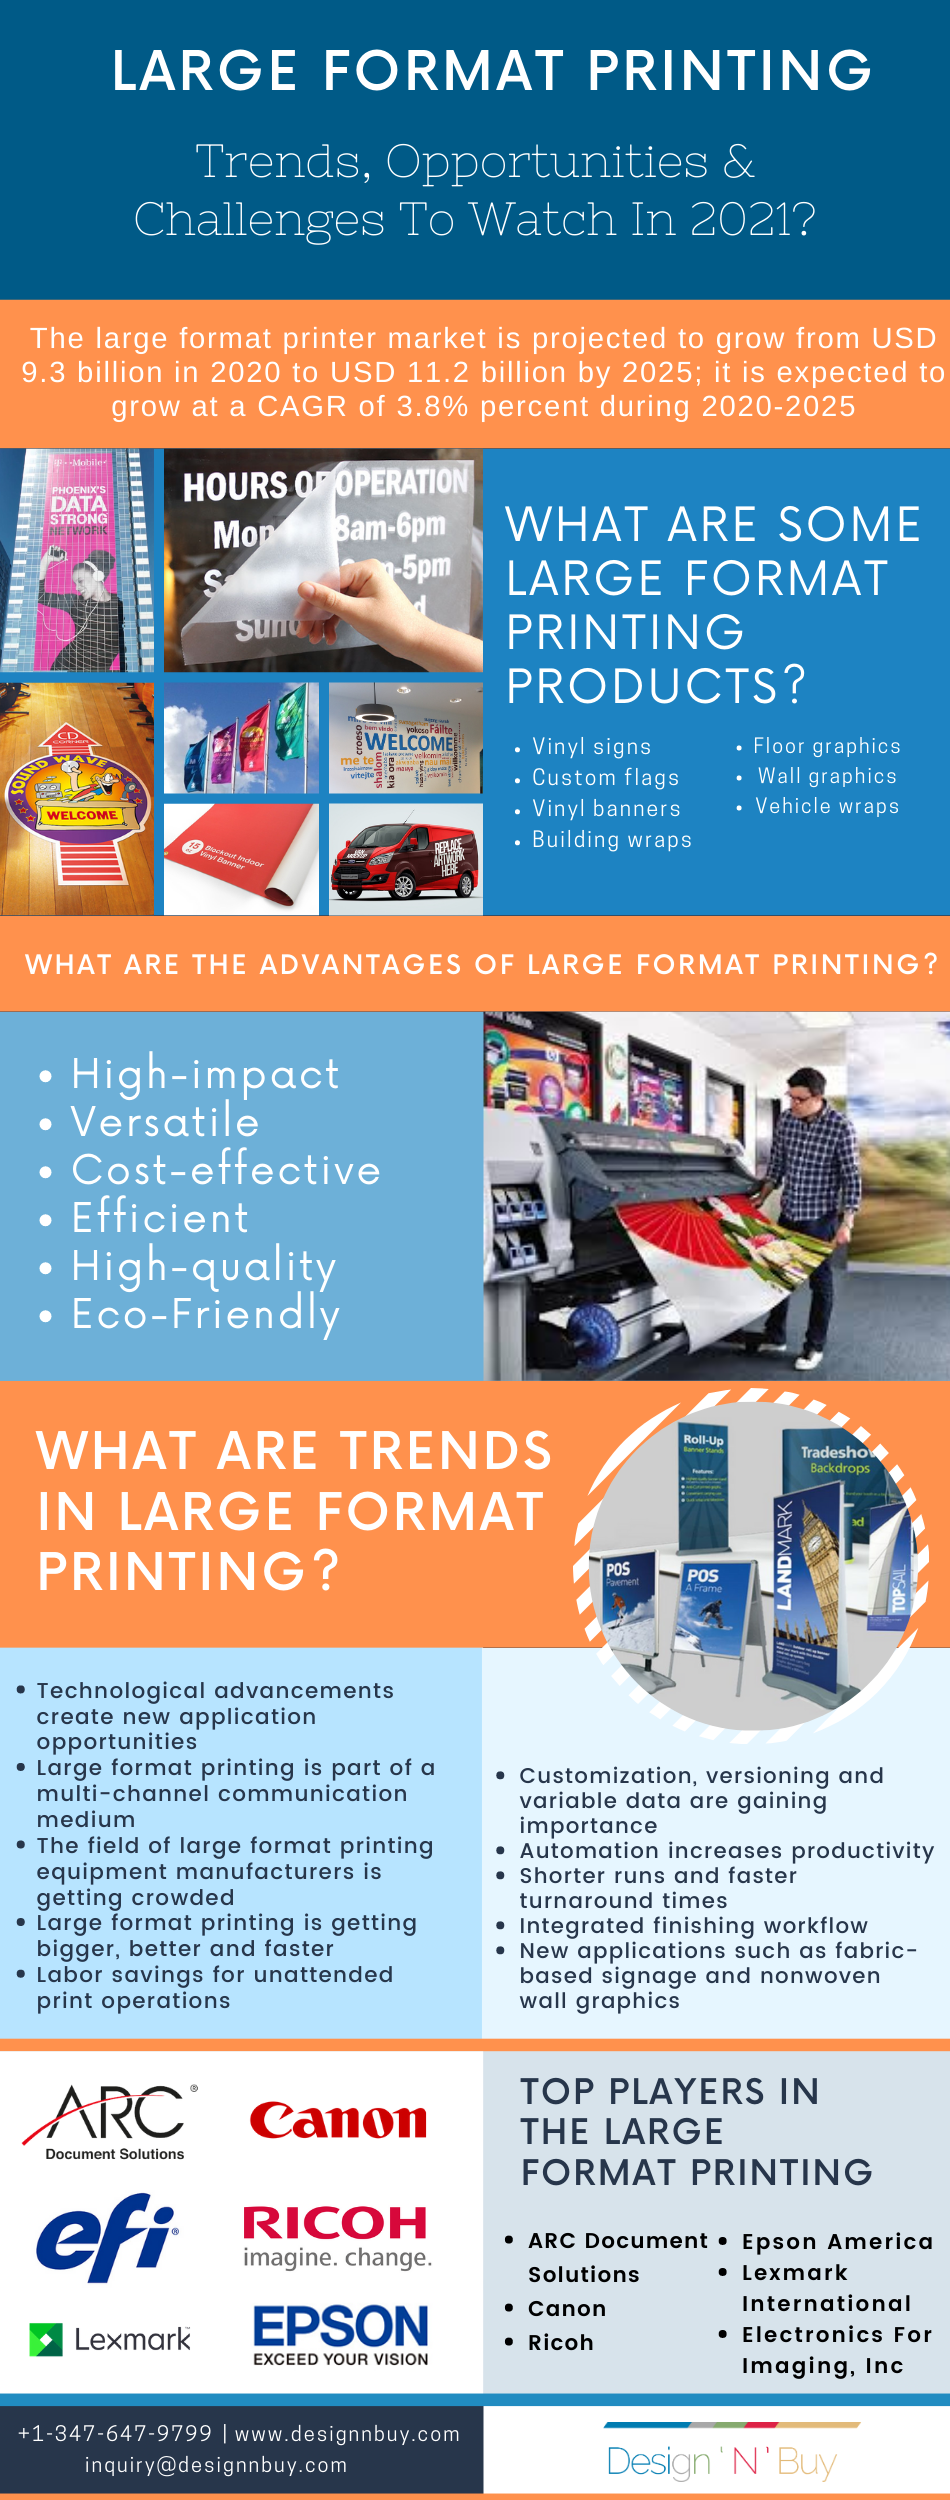 Large format printing trends